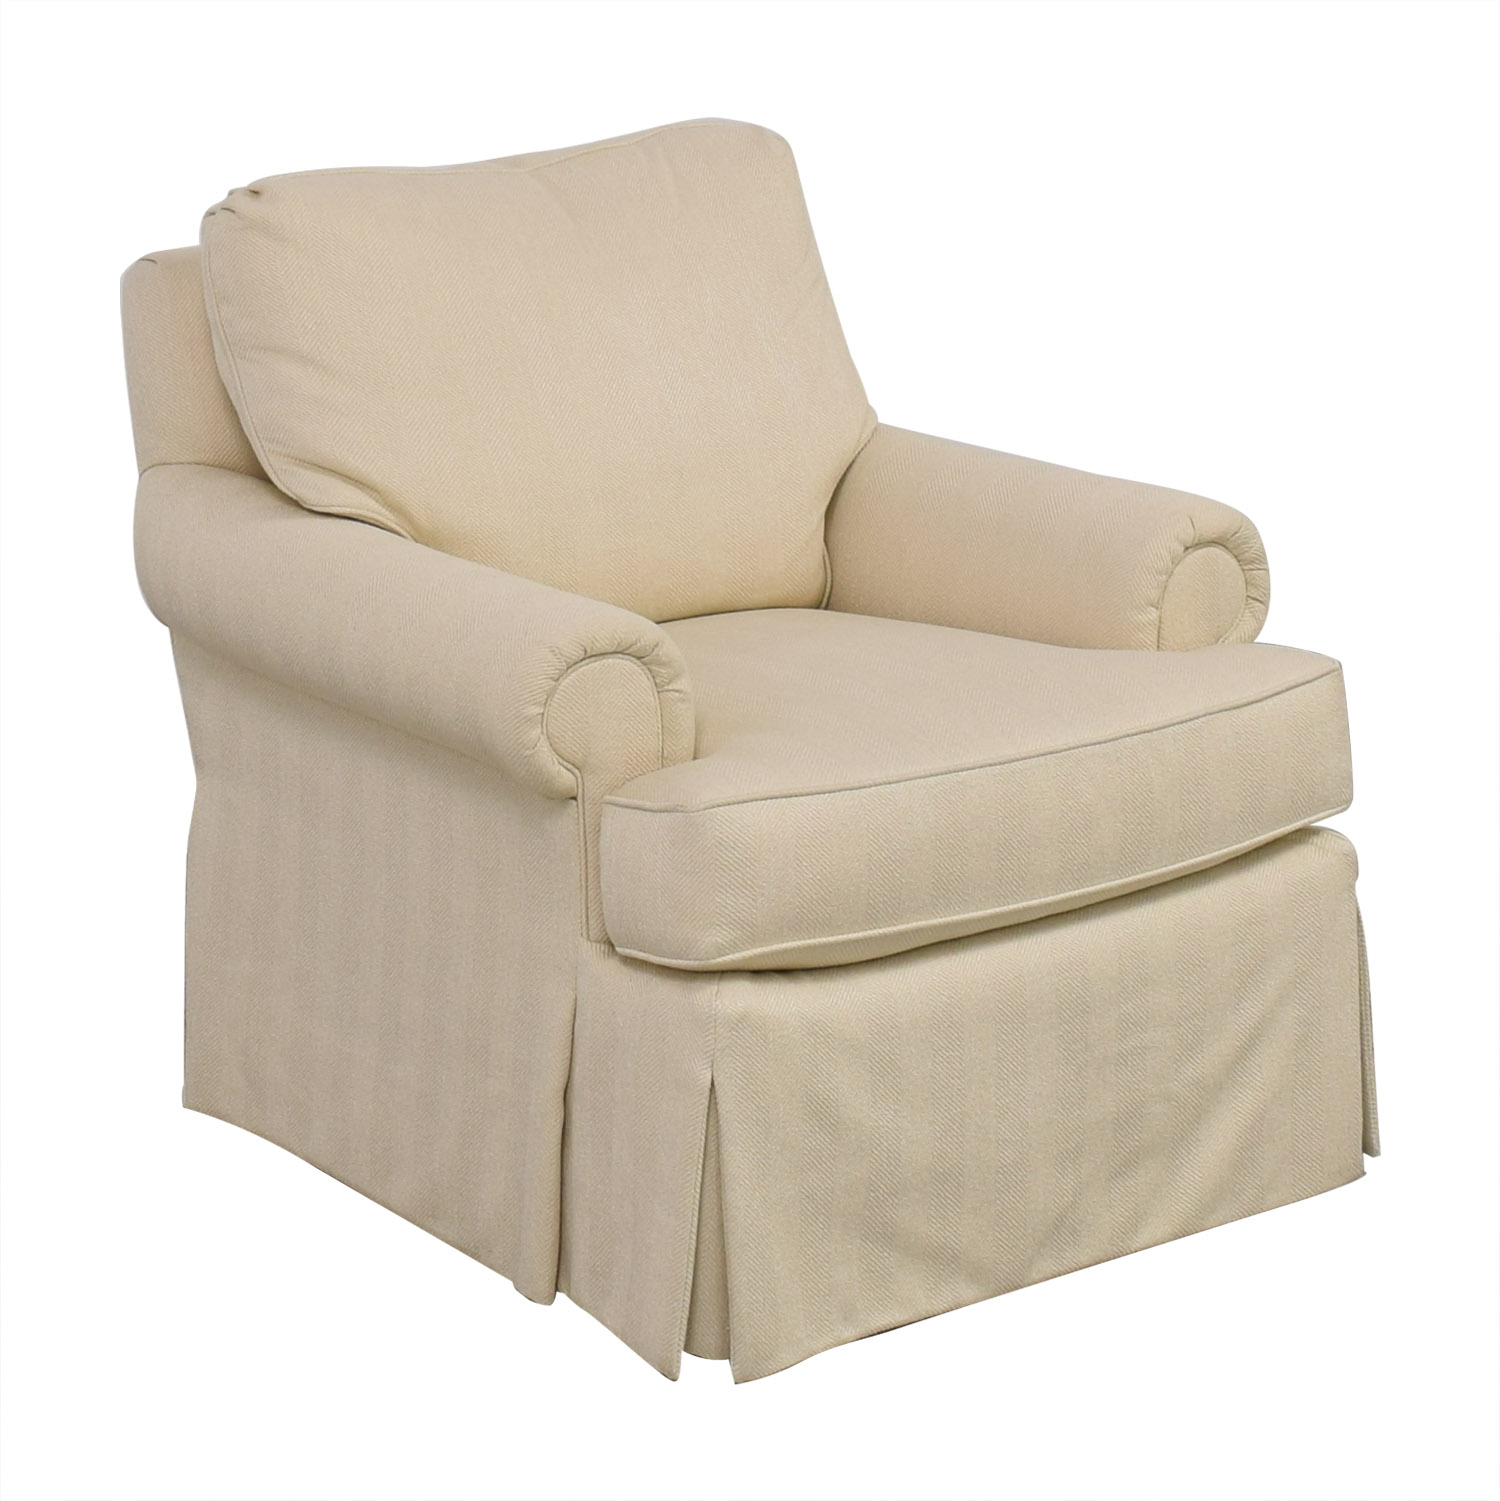 Stanford Furniture Stanford Furniture English Armchair pa